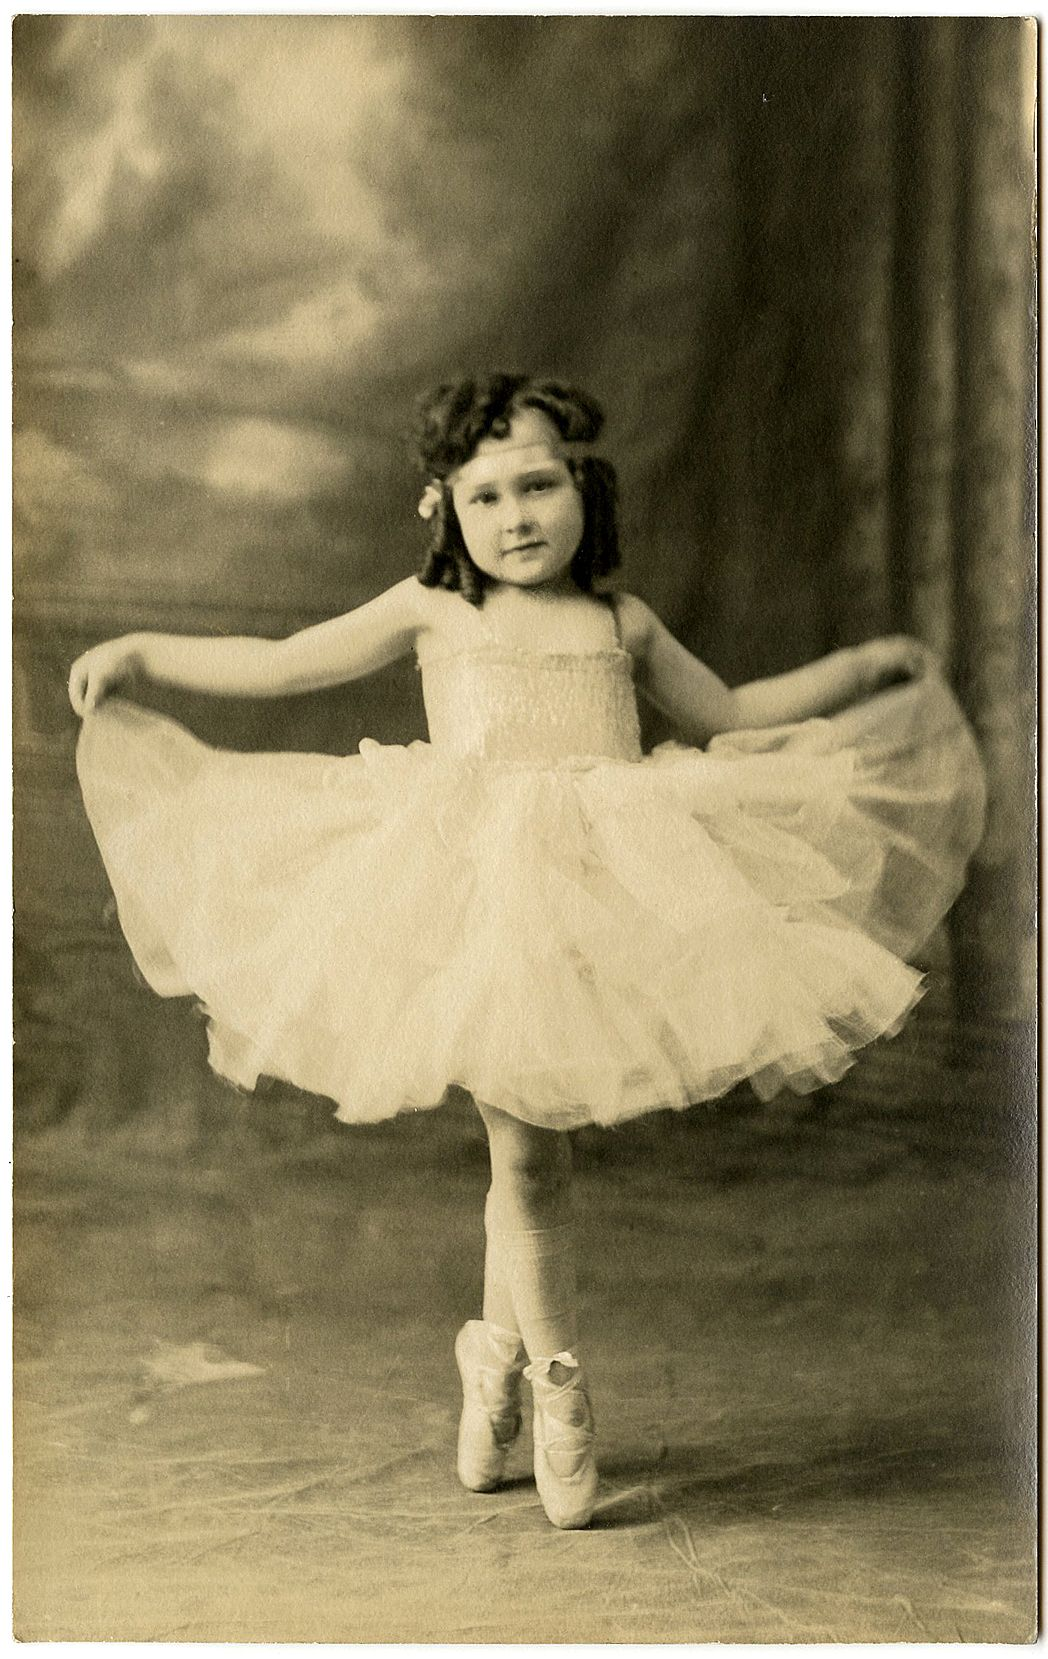 14 Ballerina Pictures Clip Art Vintage children photos